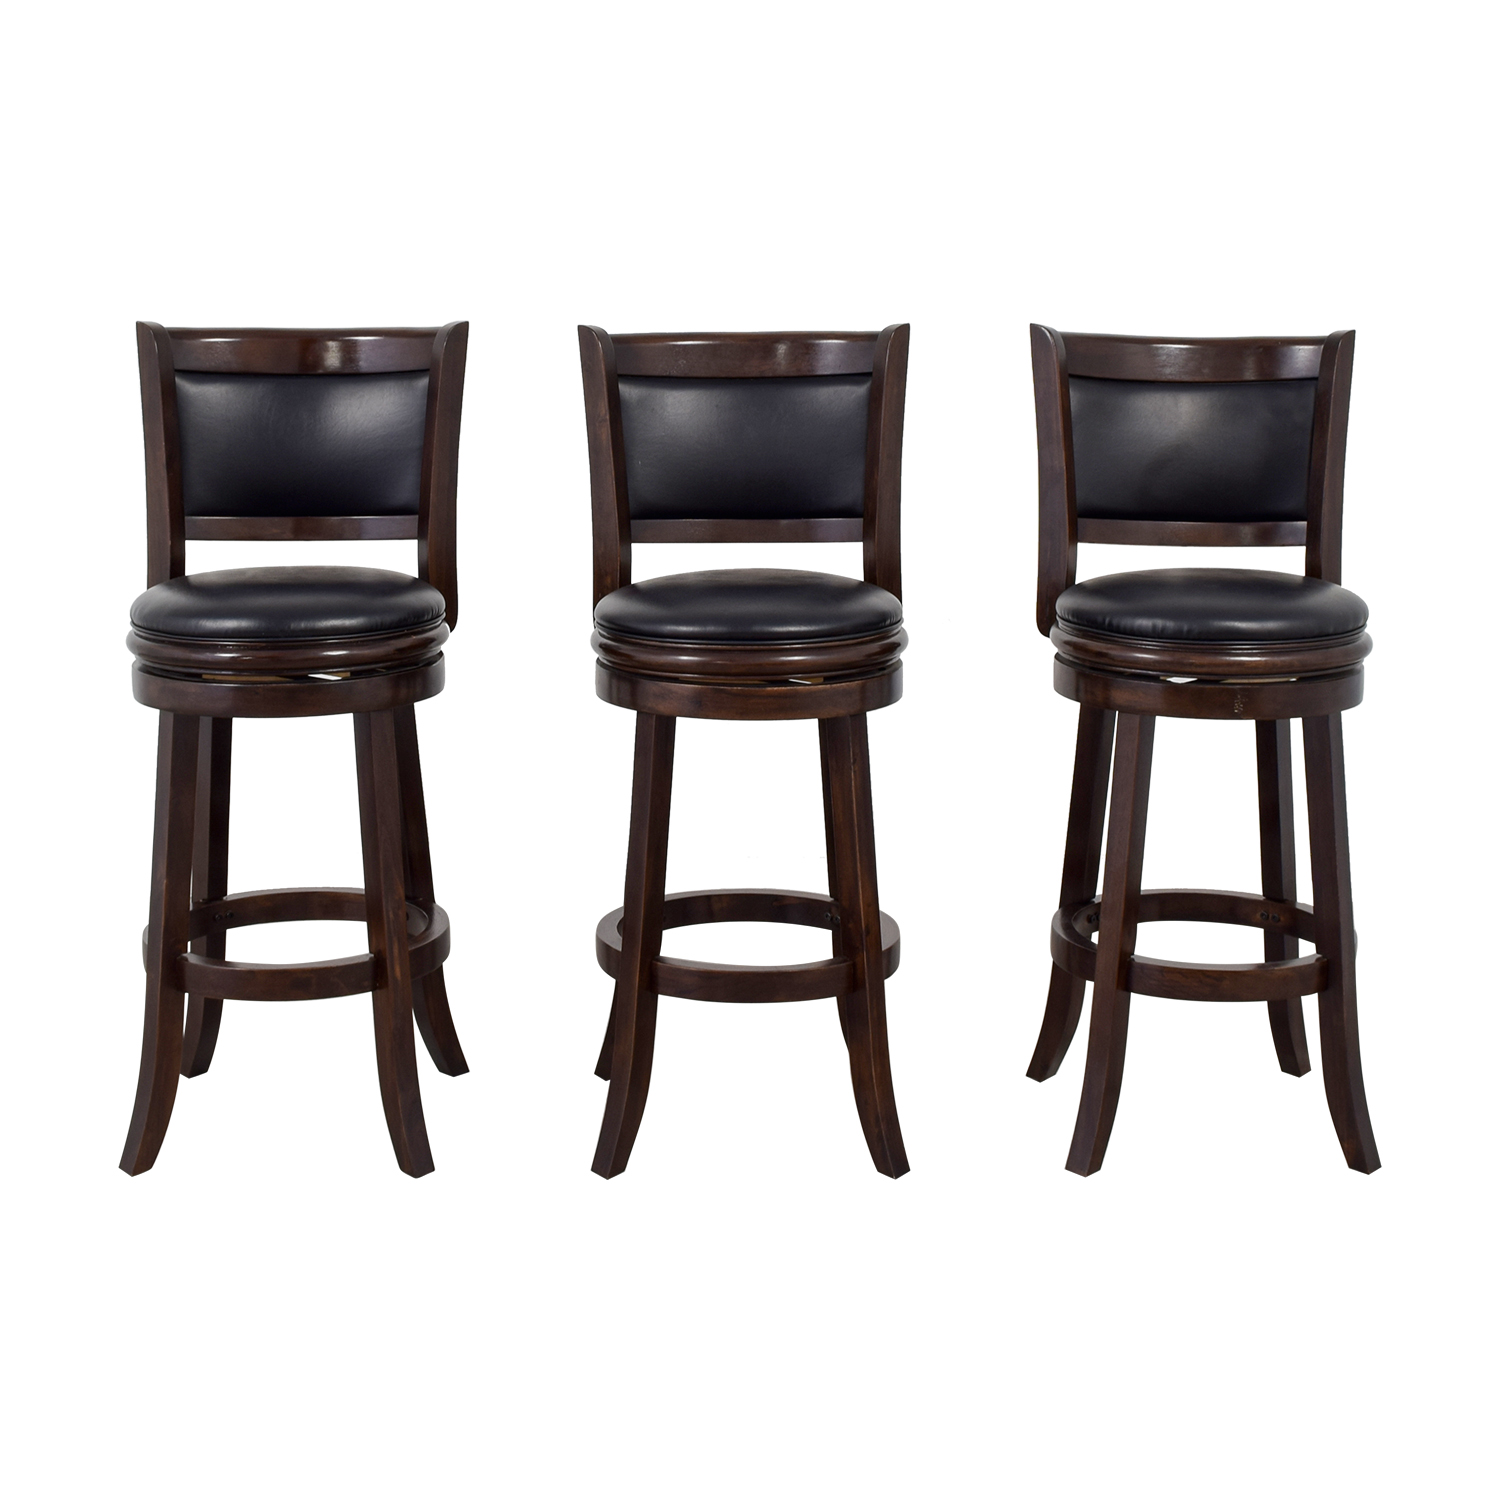 shop Raymour & Flanigan Bar Stools Raymour & Flanigan Chairs